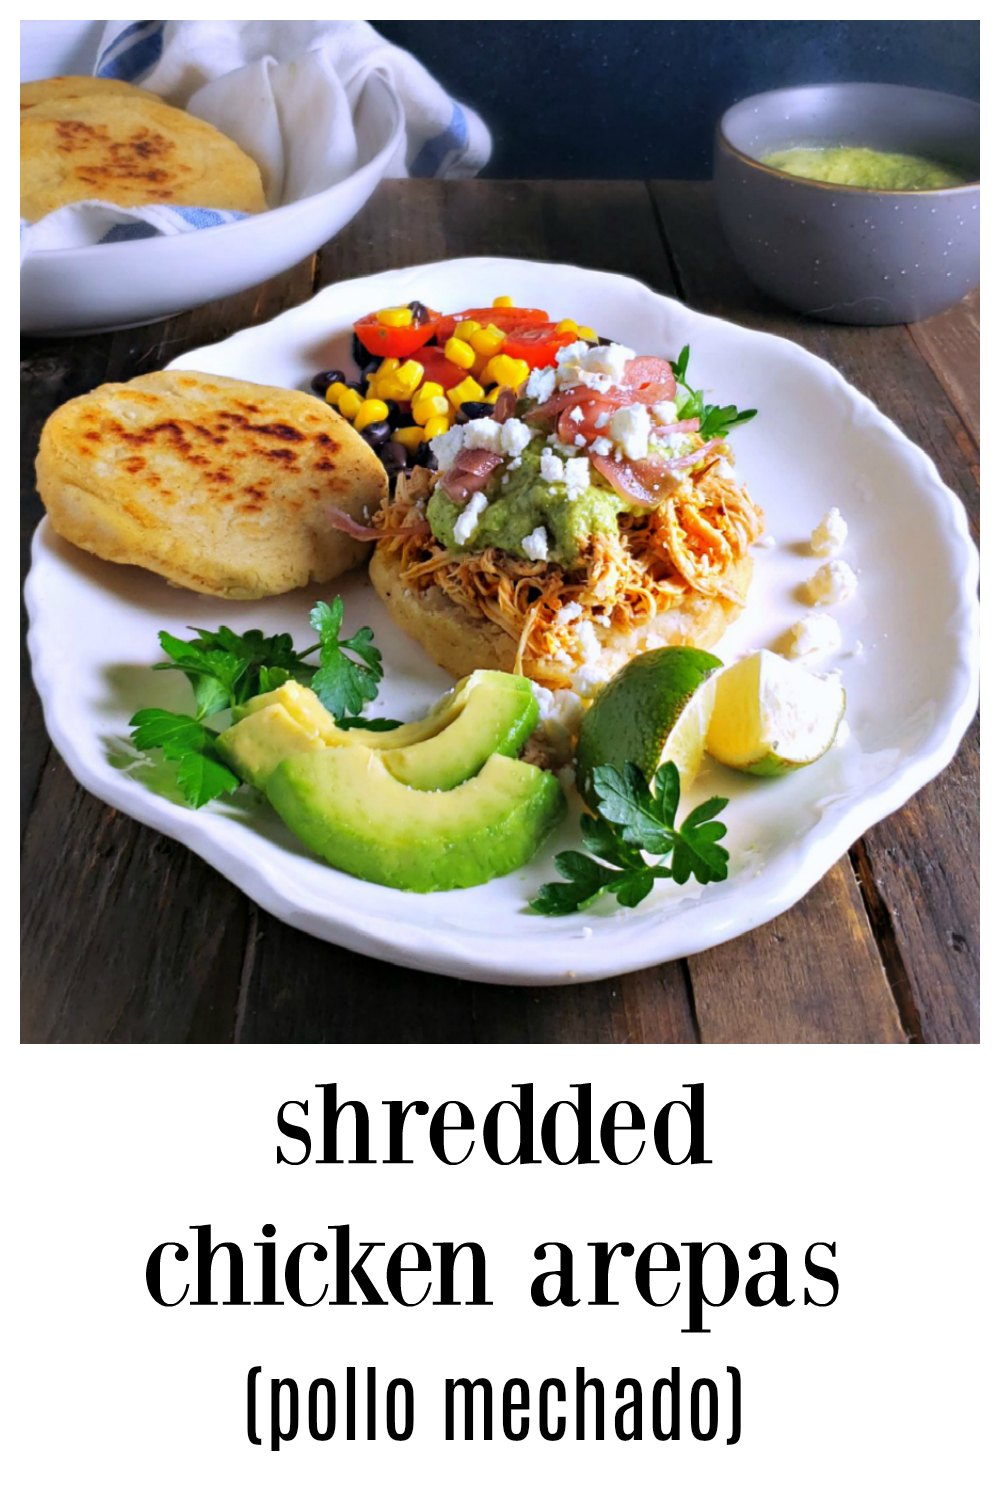 Shredded Chicken (Pollo Mechado) Arepas - Easy to make and a high payoff in flavor! You're gonna look like a pro when you serve these lovely Arepas to anyone! #Arepas #ChickenArepas #ShreddedChickenArepas #PolloMachado #PolloMechadoArepas #Venezuelan